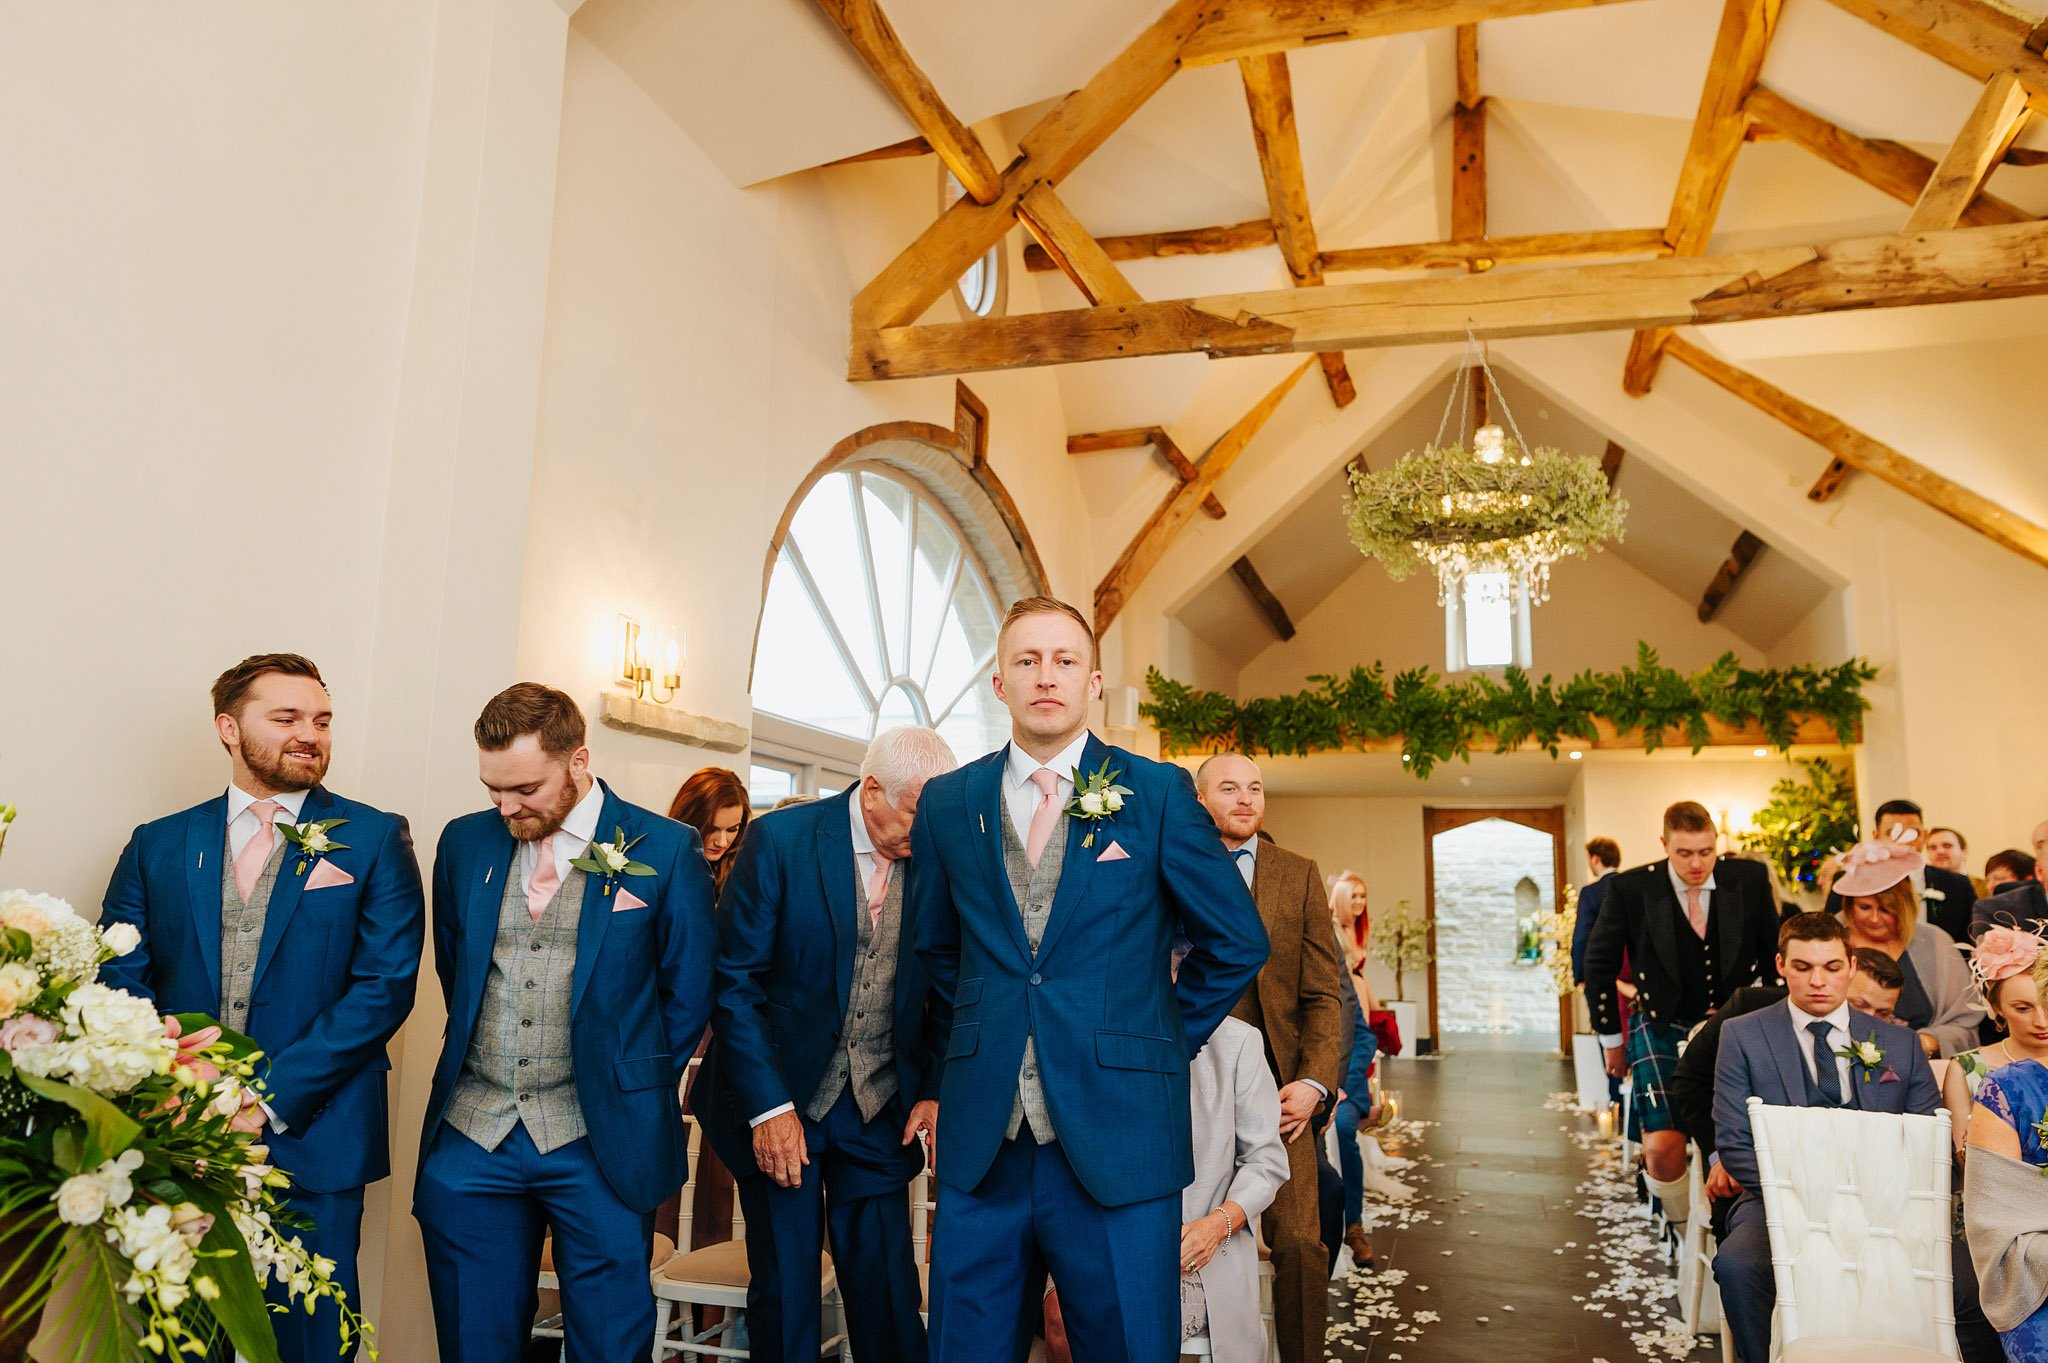 lemore manor wedding herefordshire 38 - Lemore Manor wedding, Herefordshire - West Midlands | Sadie + Ken